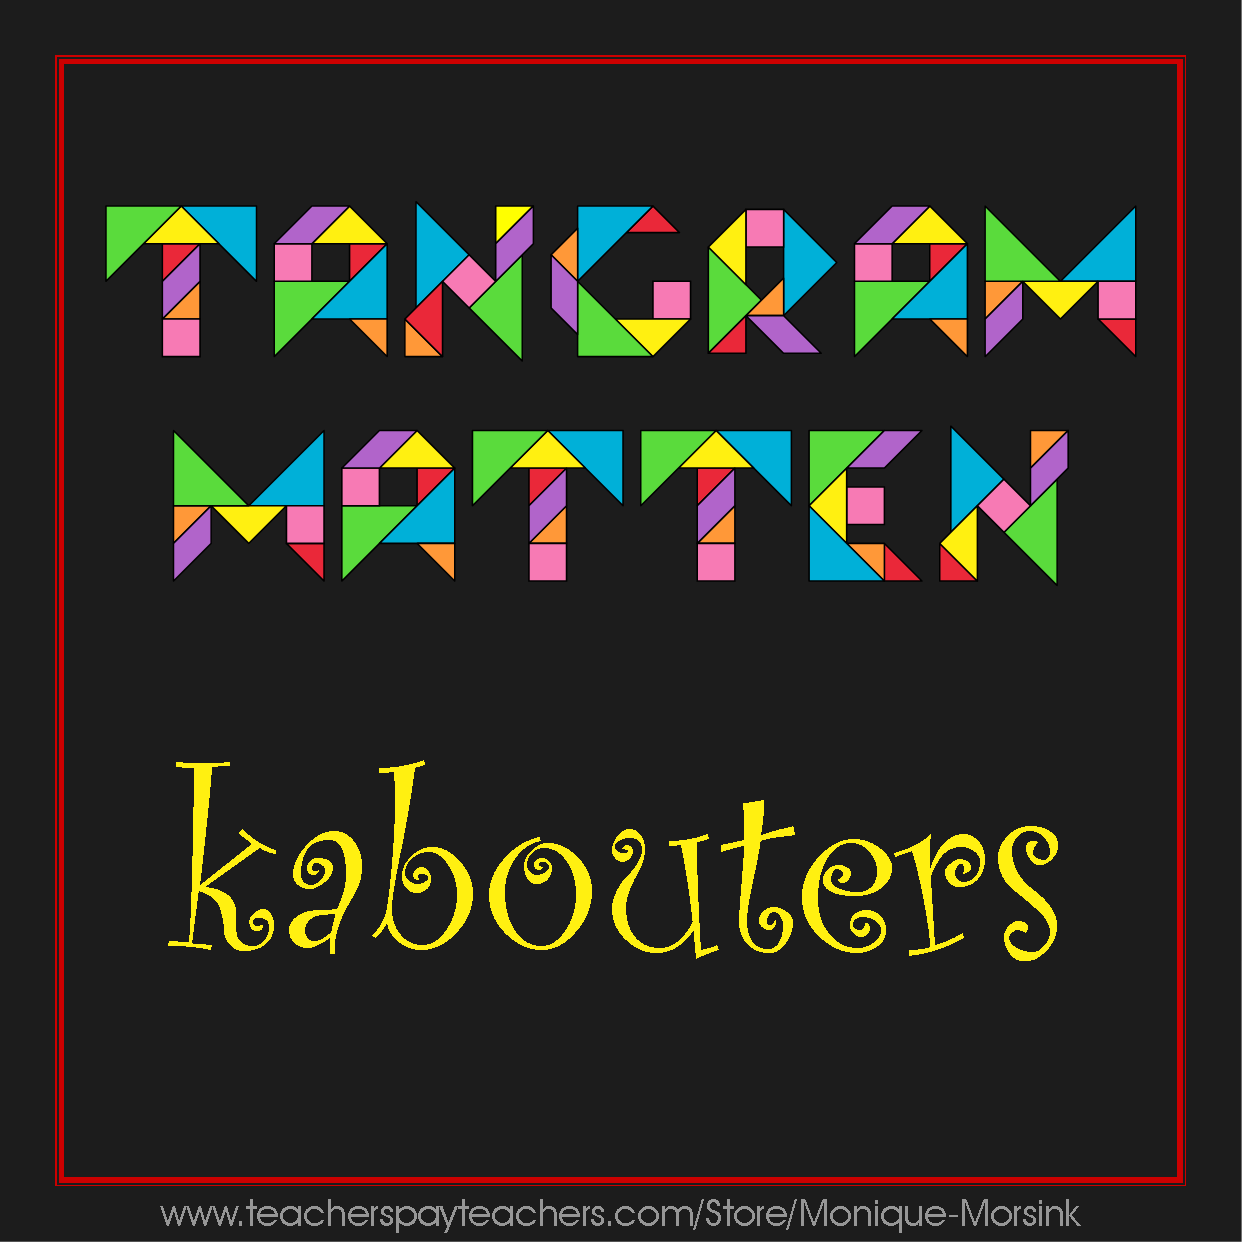 Kabouters